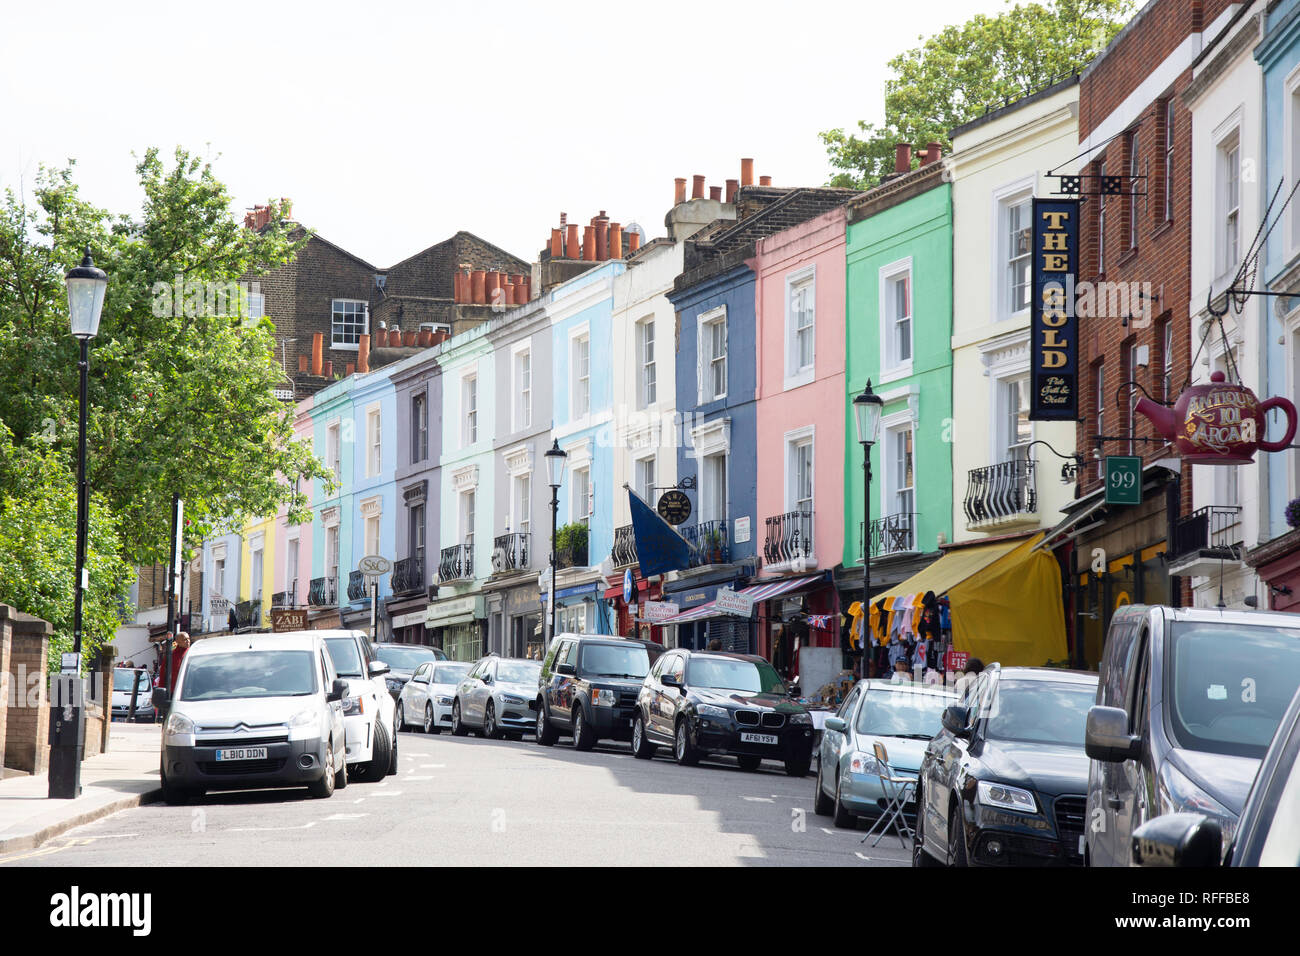 Antique shops, Portobello Road, Notting Hill, Royal Borough of Kensington and Chelsea, Greater London, England, United Kingdom - Stock Image